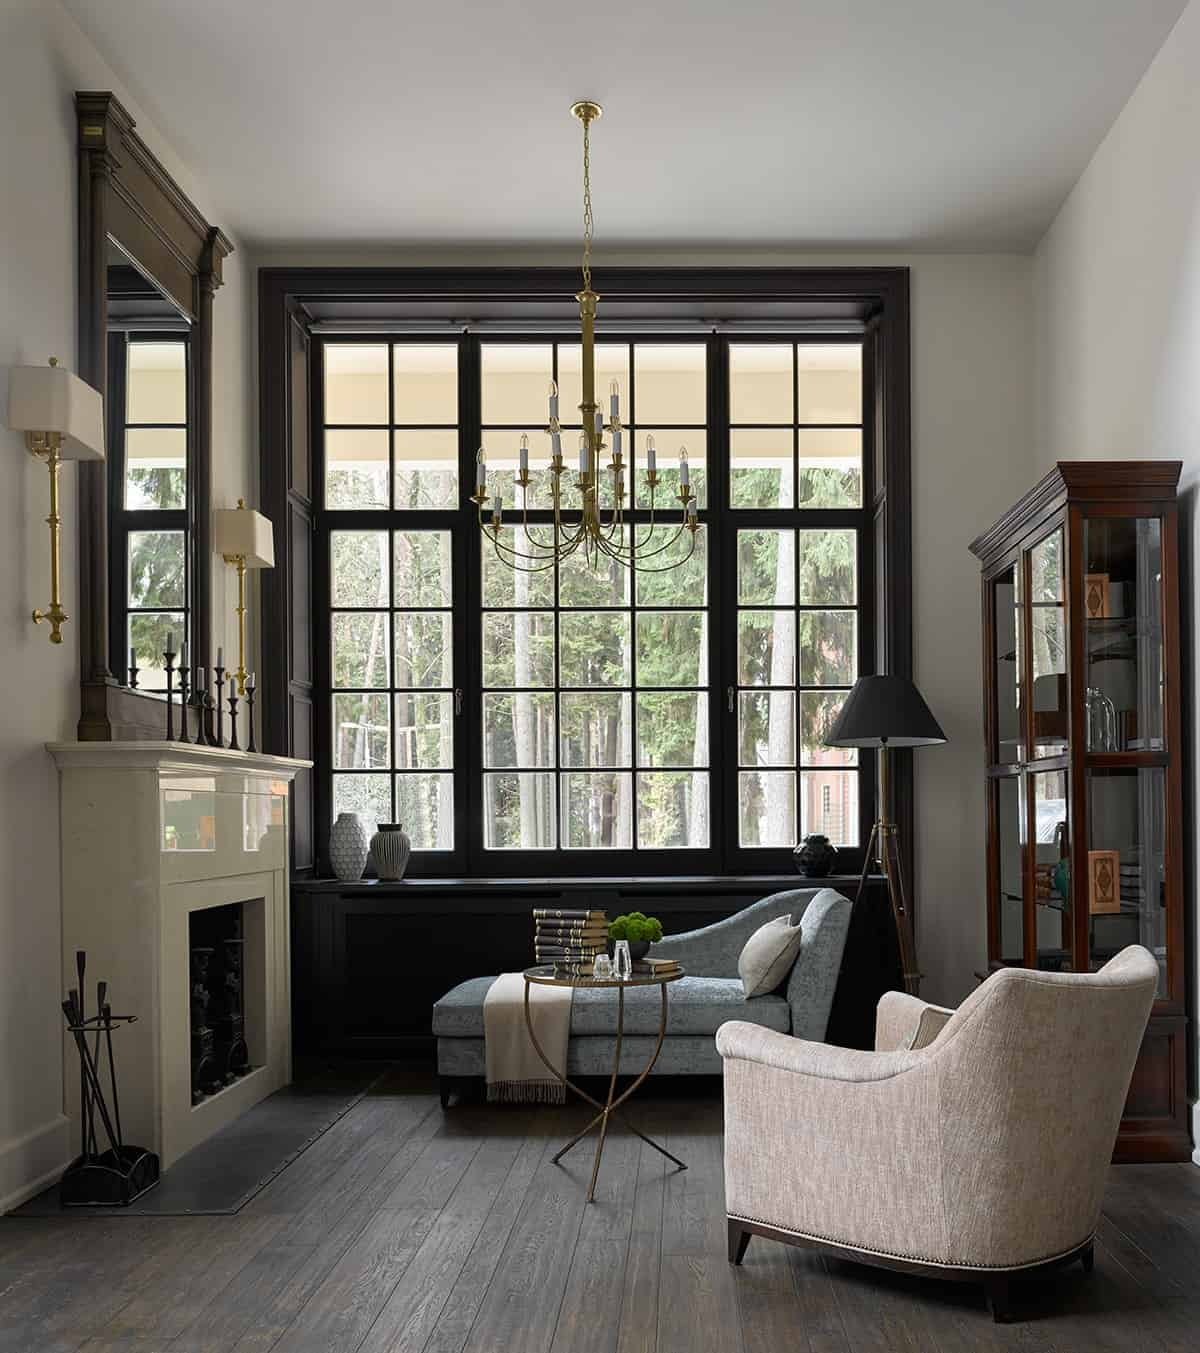 This is a small living room given the illusion of a bigger space thanks to its tall window that has a dark frame making the golden chandelier stand out.